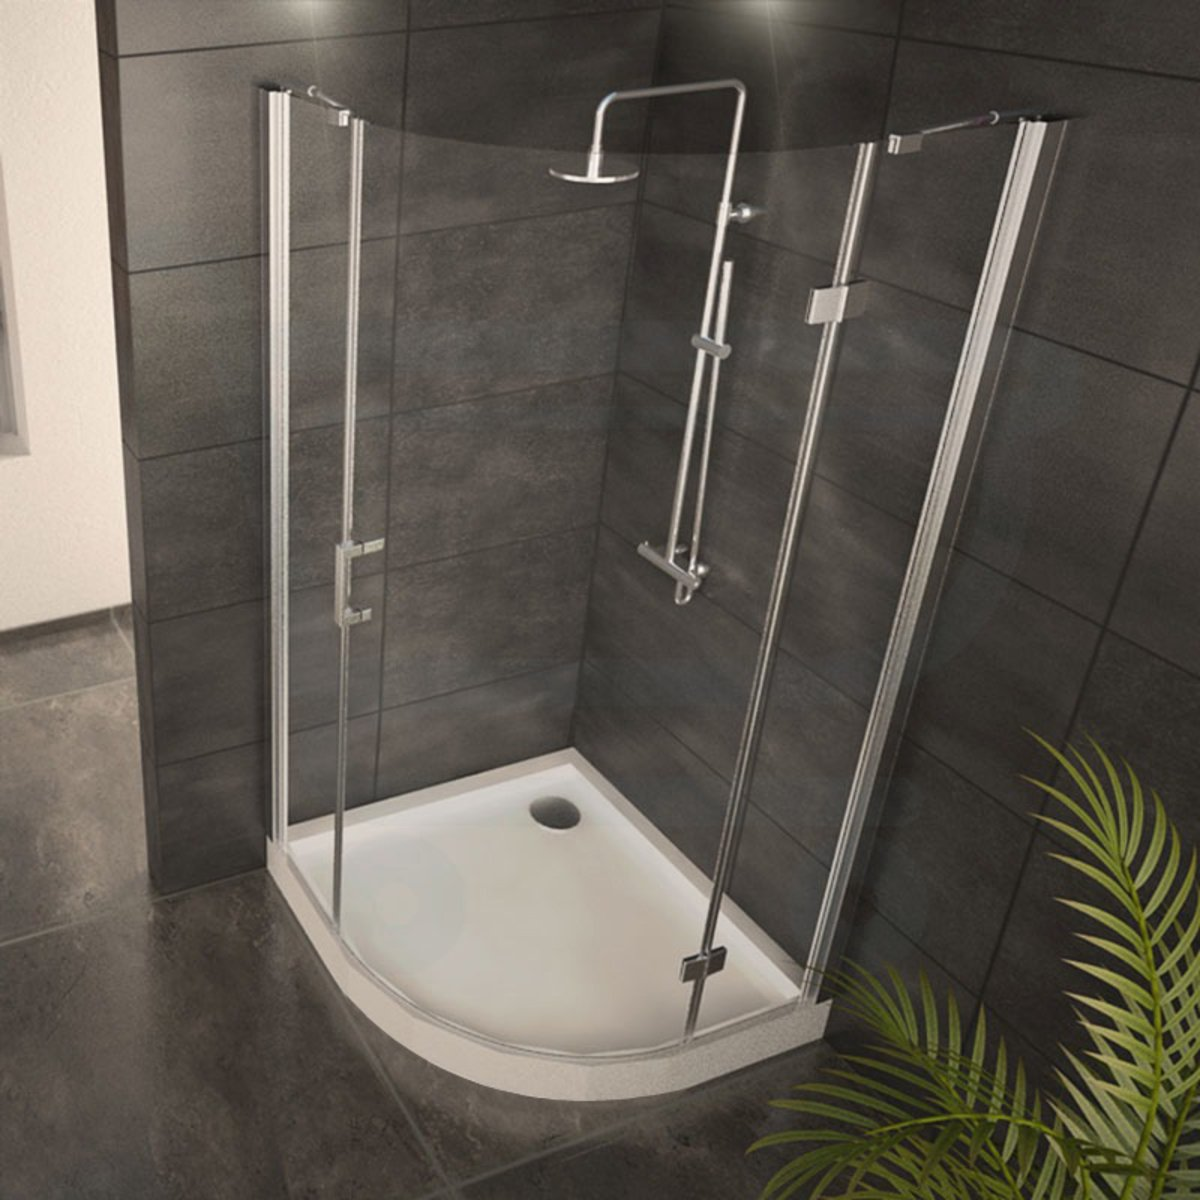 adema glass cabine de douche quart de rond avec 1 porte pivotante 90x90x200cm vitre claire avec. Black Bedroom Furniture Sets. Home Design Ideas